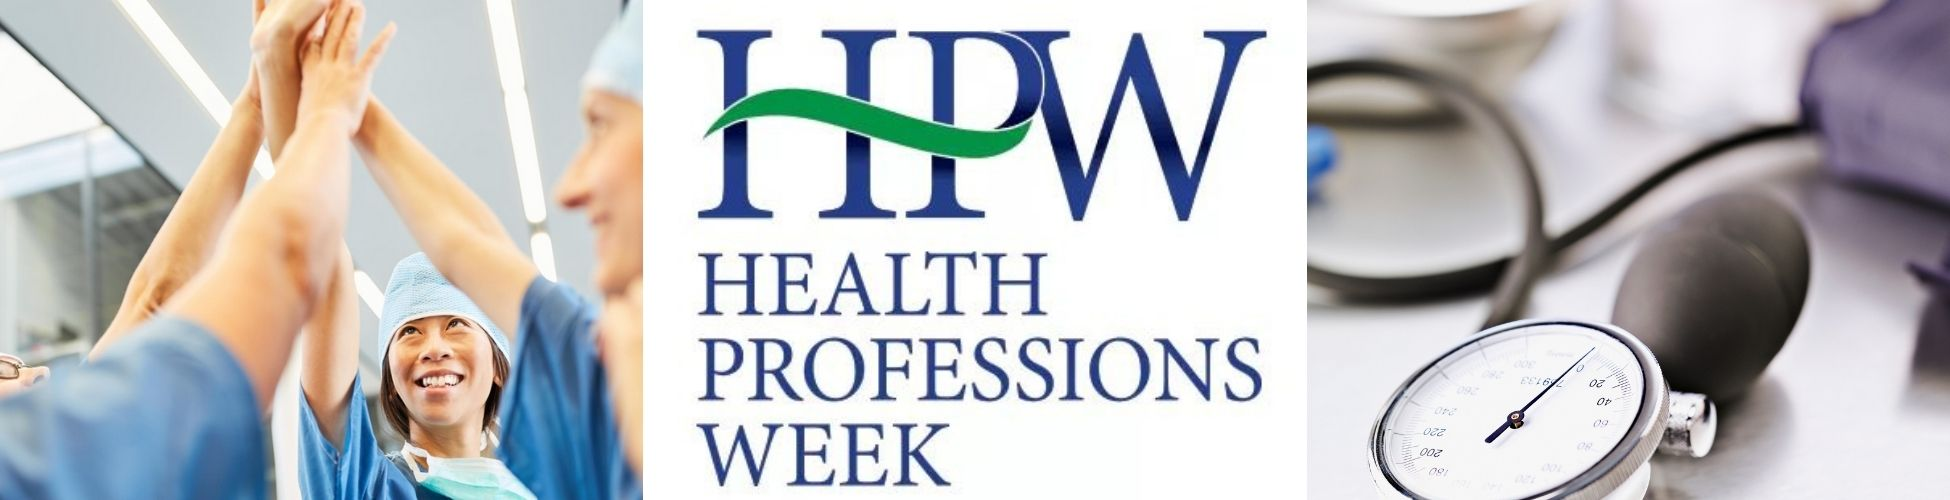 How to Best Experience Health Professions Week 2020